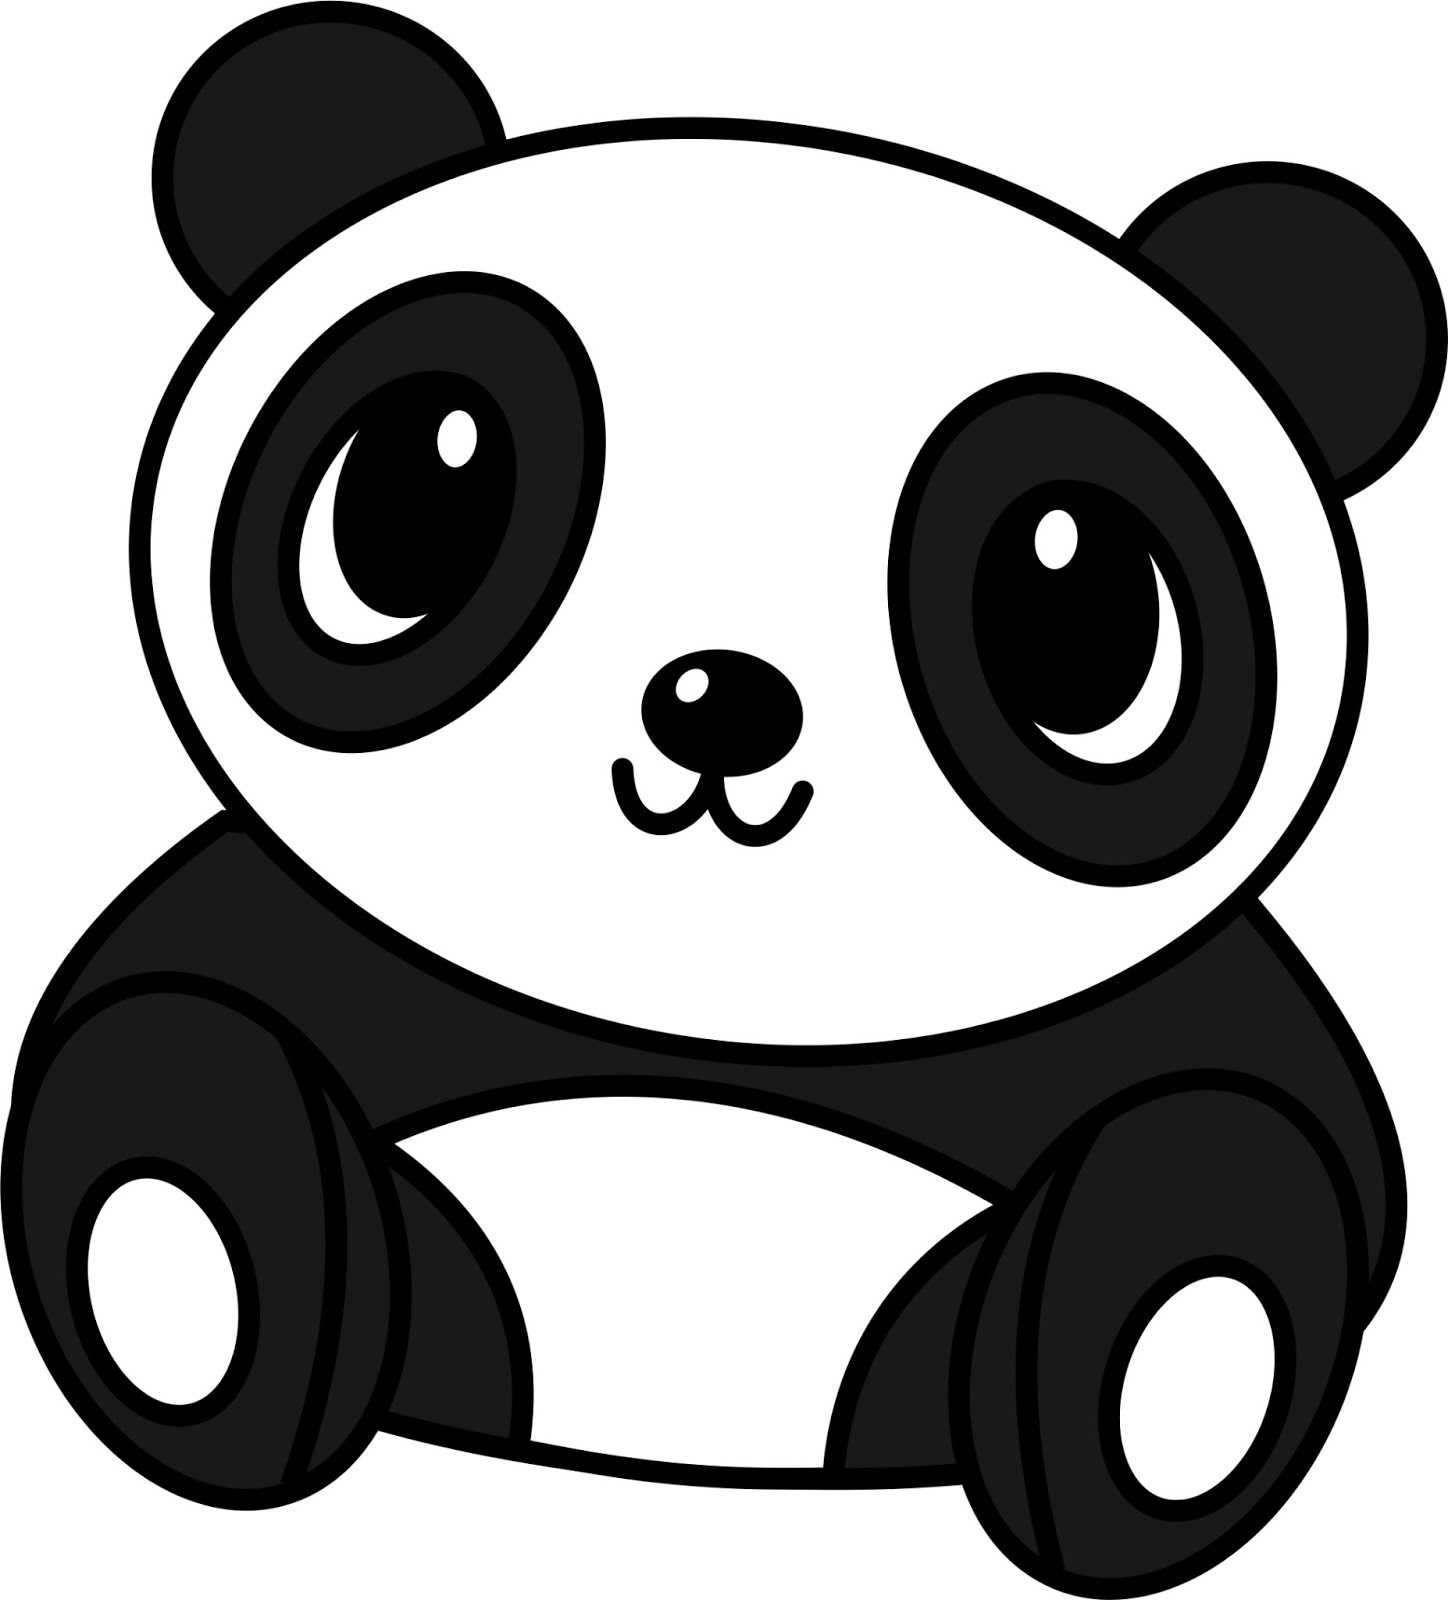 How to draw a cute baby panda - photo#7